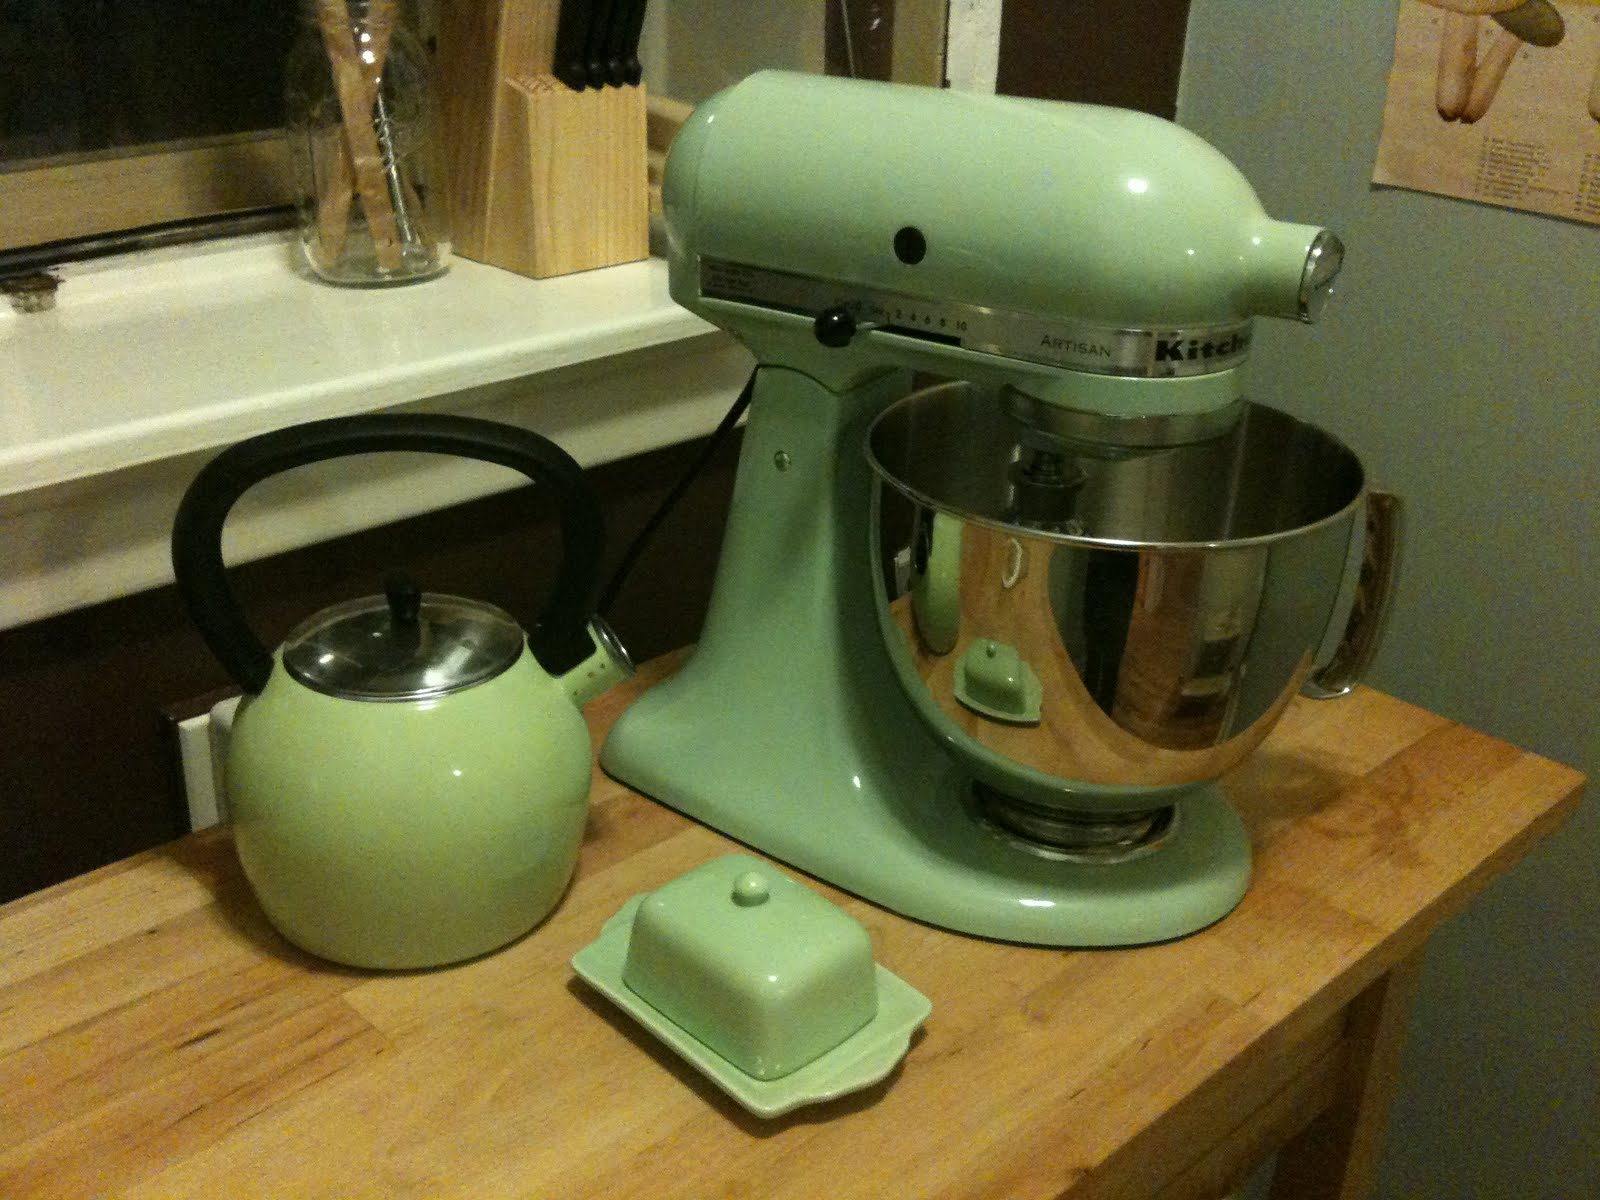 The KitchenAid 5 Quart Artisan Stand Mixer: All The Details You Didnu0027t Know